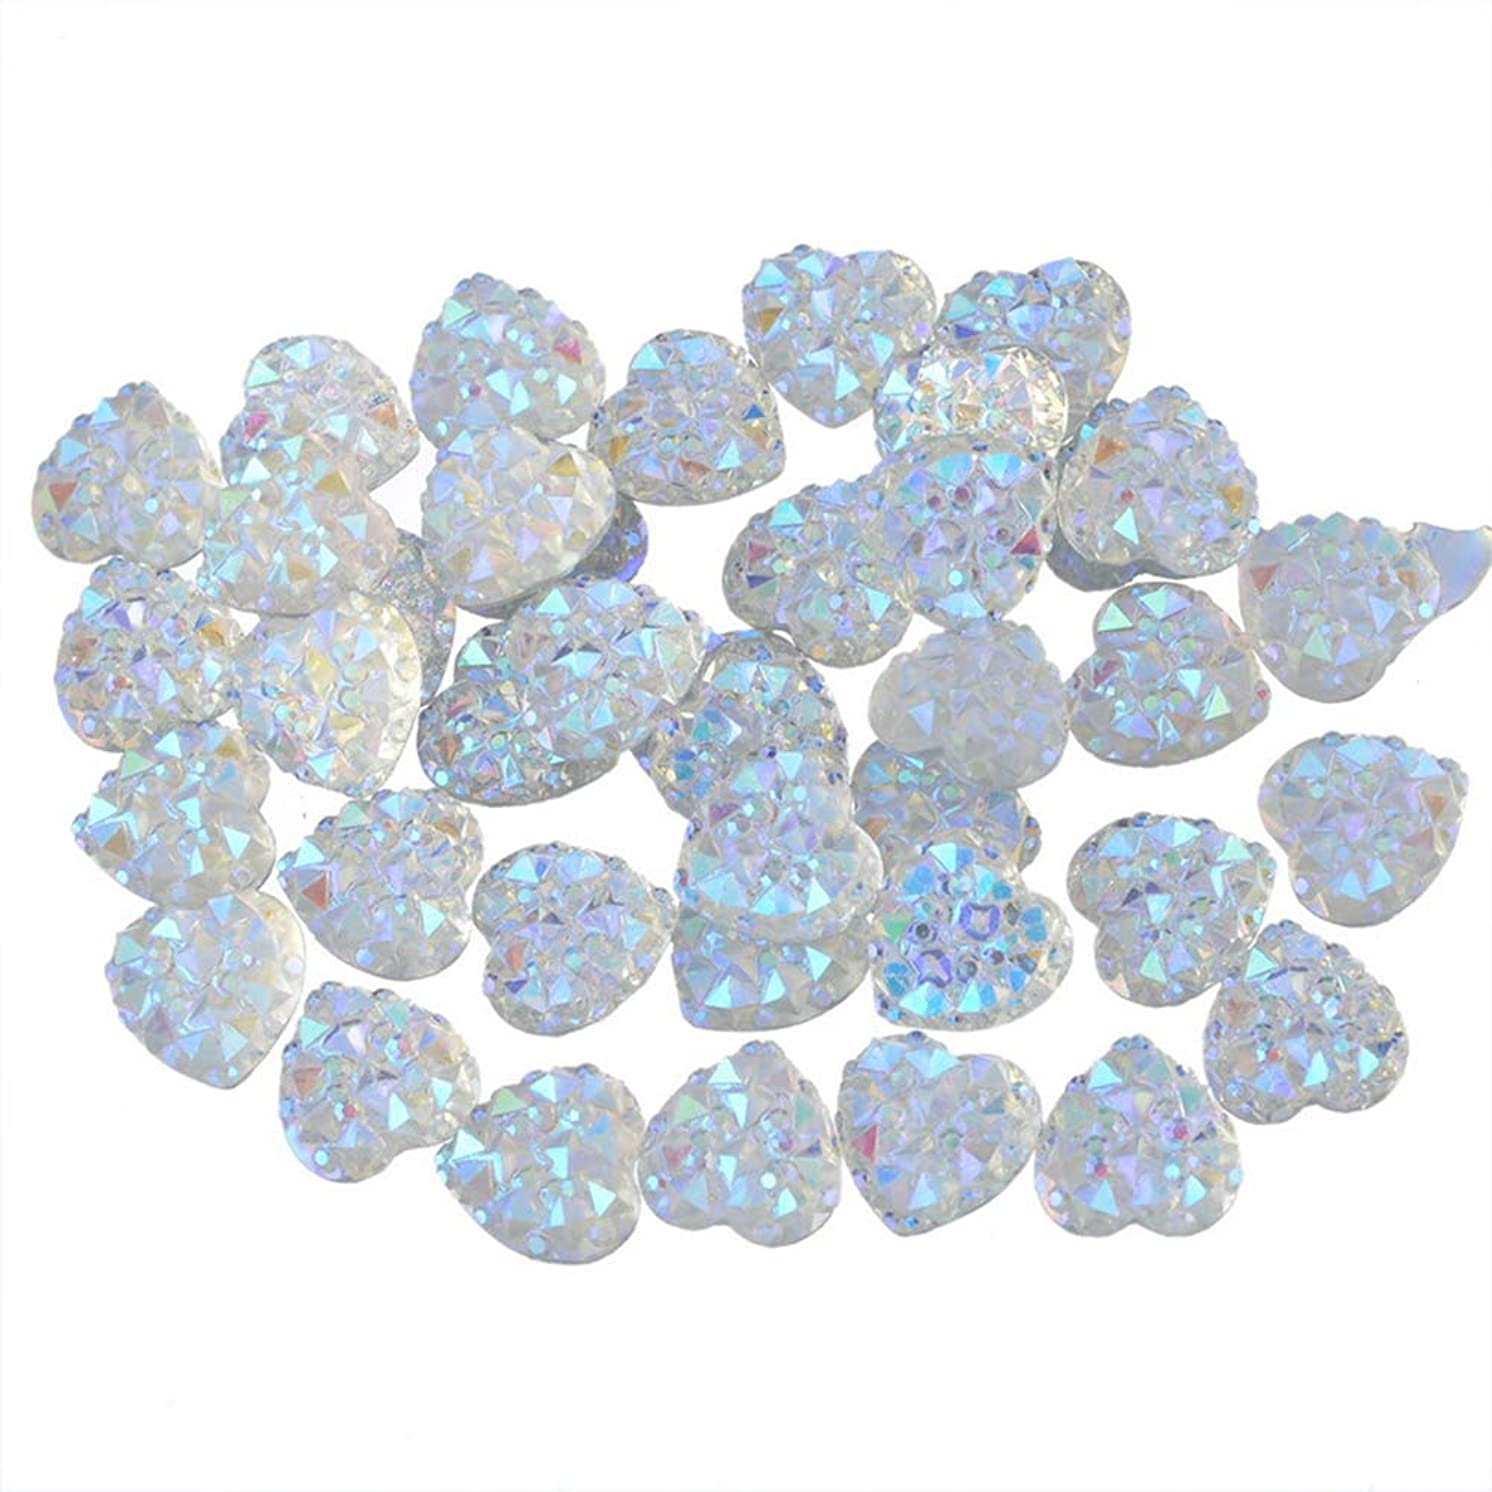 PH PandaHall About 100pcs White 9.5mm Heart Flat Back Resin Cabochons Sparkly Glitter for Setting Bezel Tray Pendant Charms